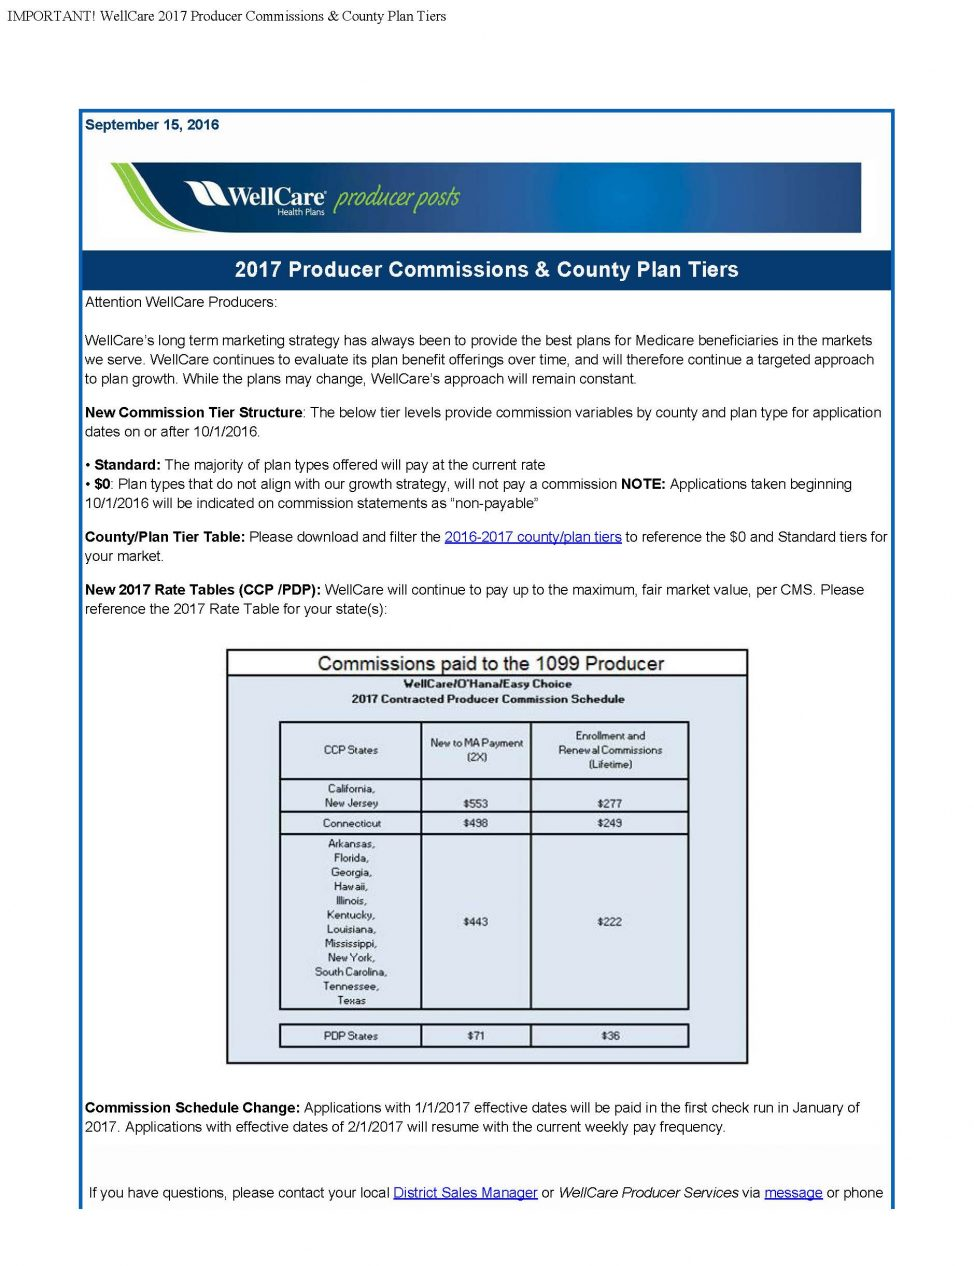 important-wellcare-2017-producer-commissions-county-plan-tiers